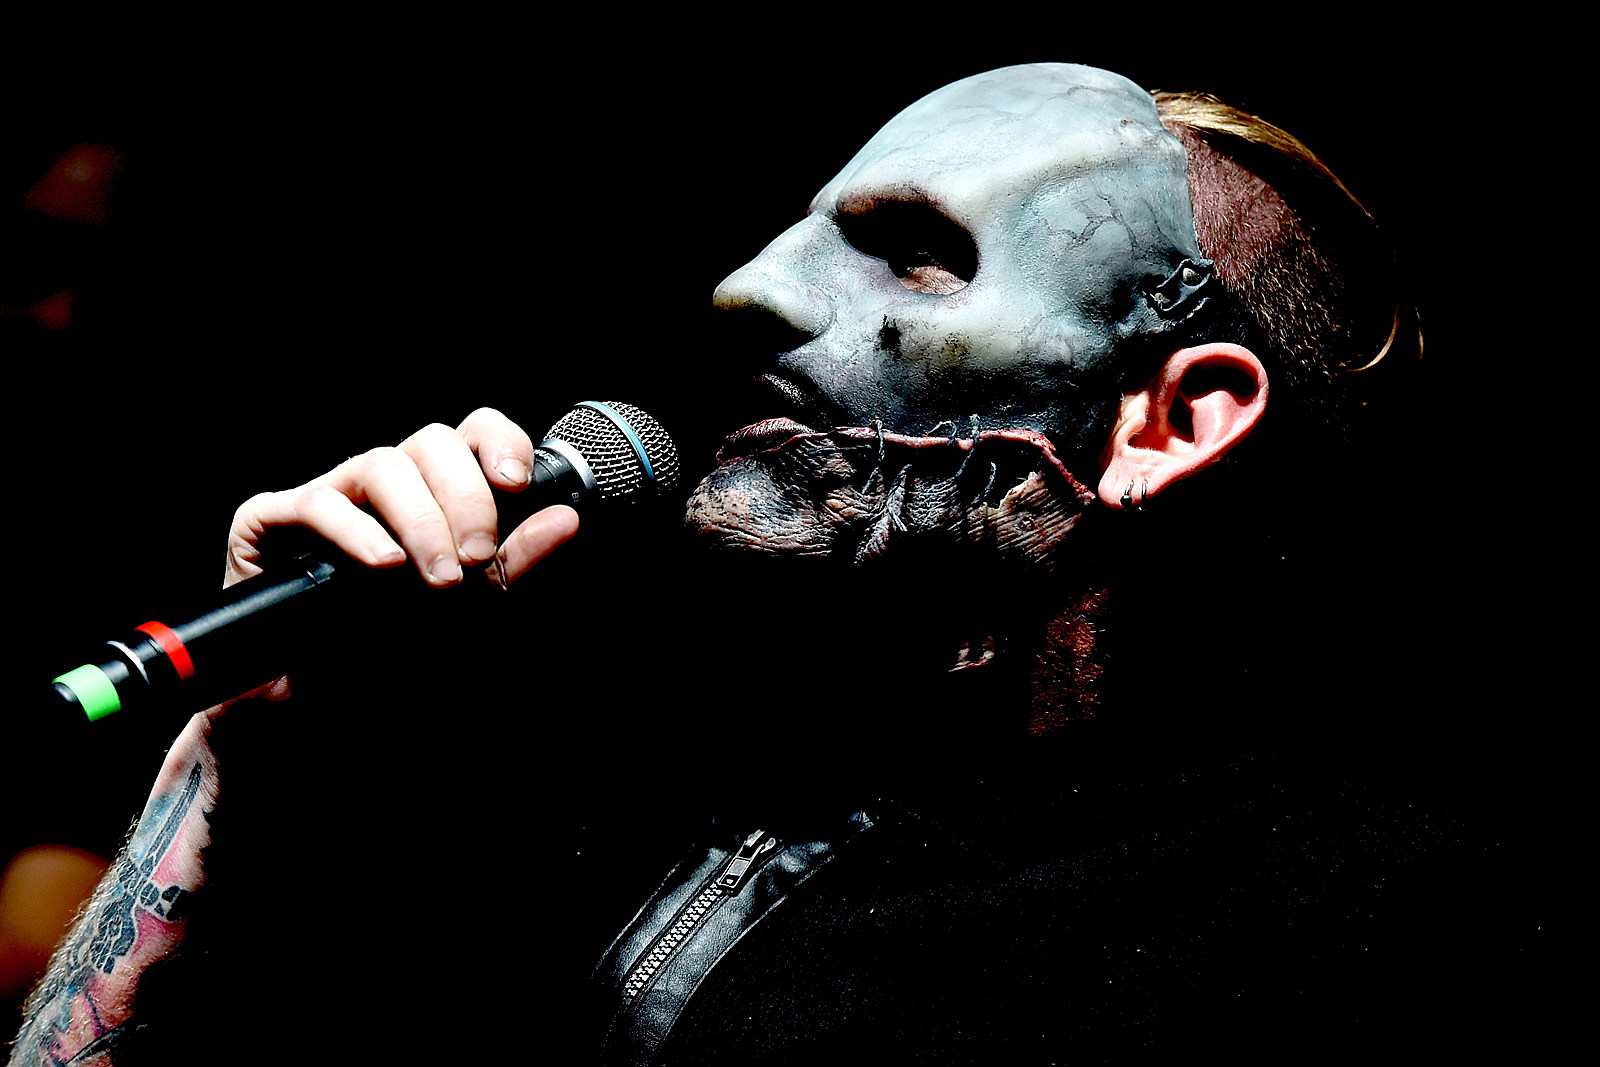 Watch Slipknot Reveal New Masks in 'Unsainted' Video